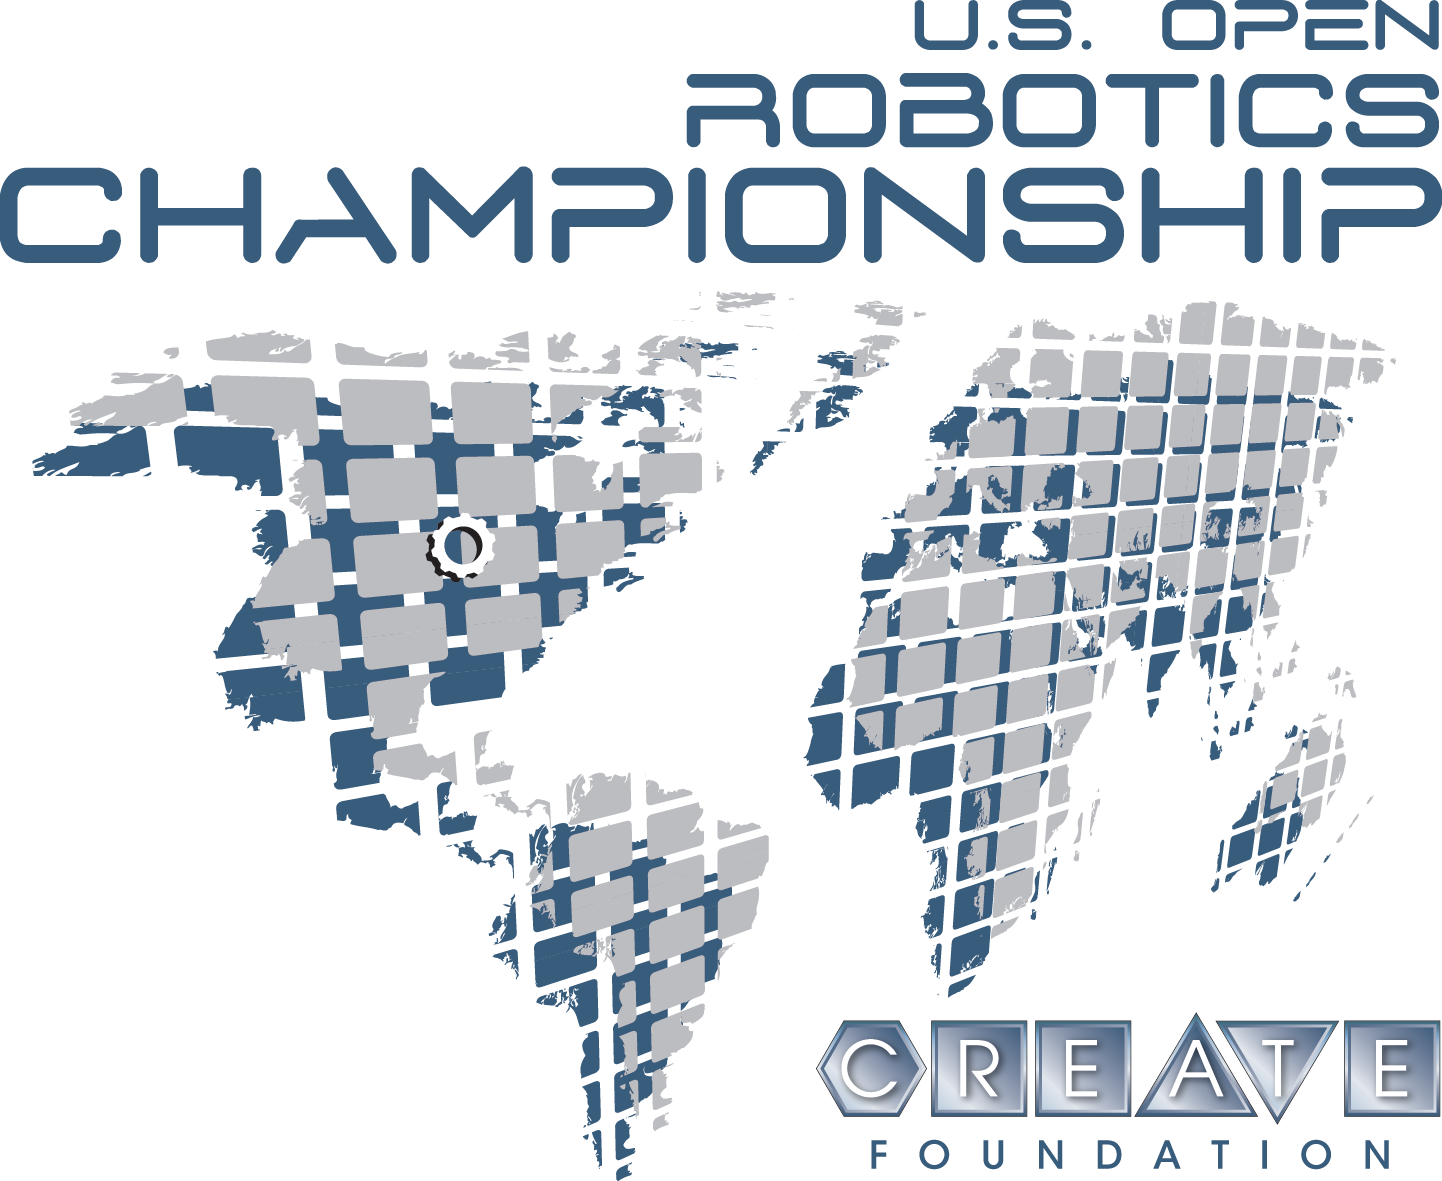 2020 CREATE U.S. Open Robotics Championship - CREATE OPEN PROGRAM Tournament logo